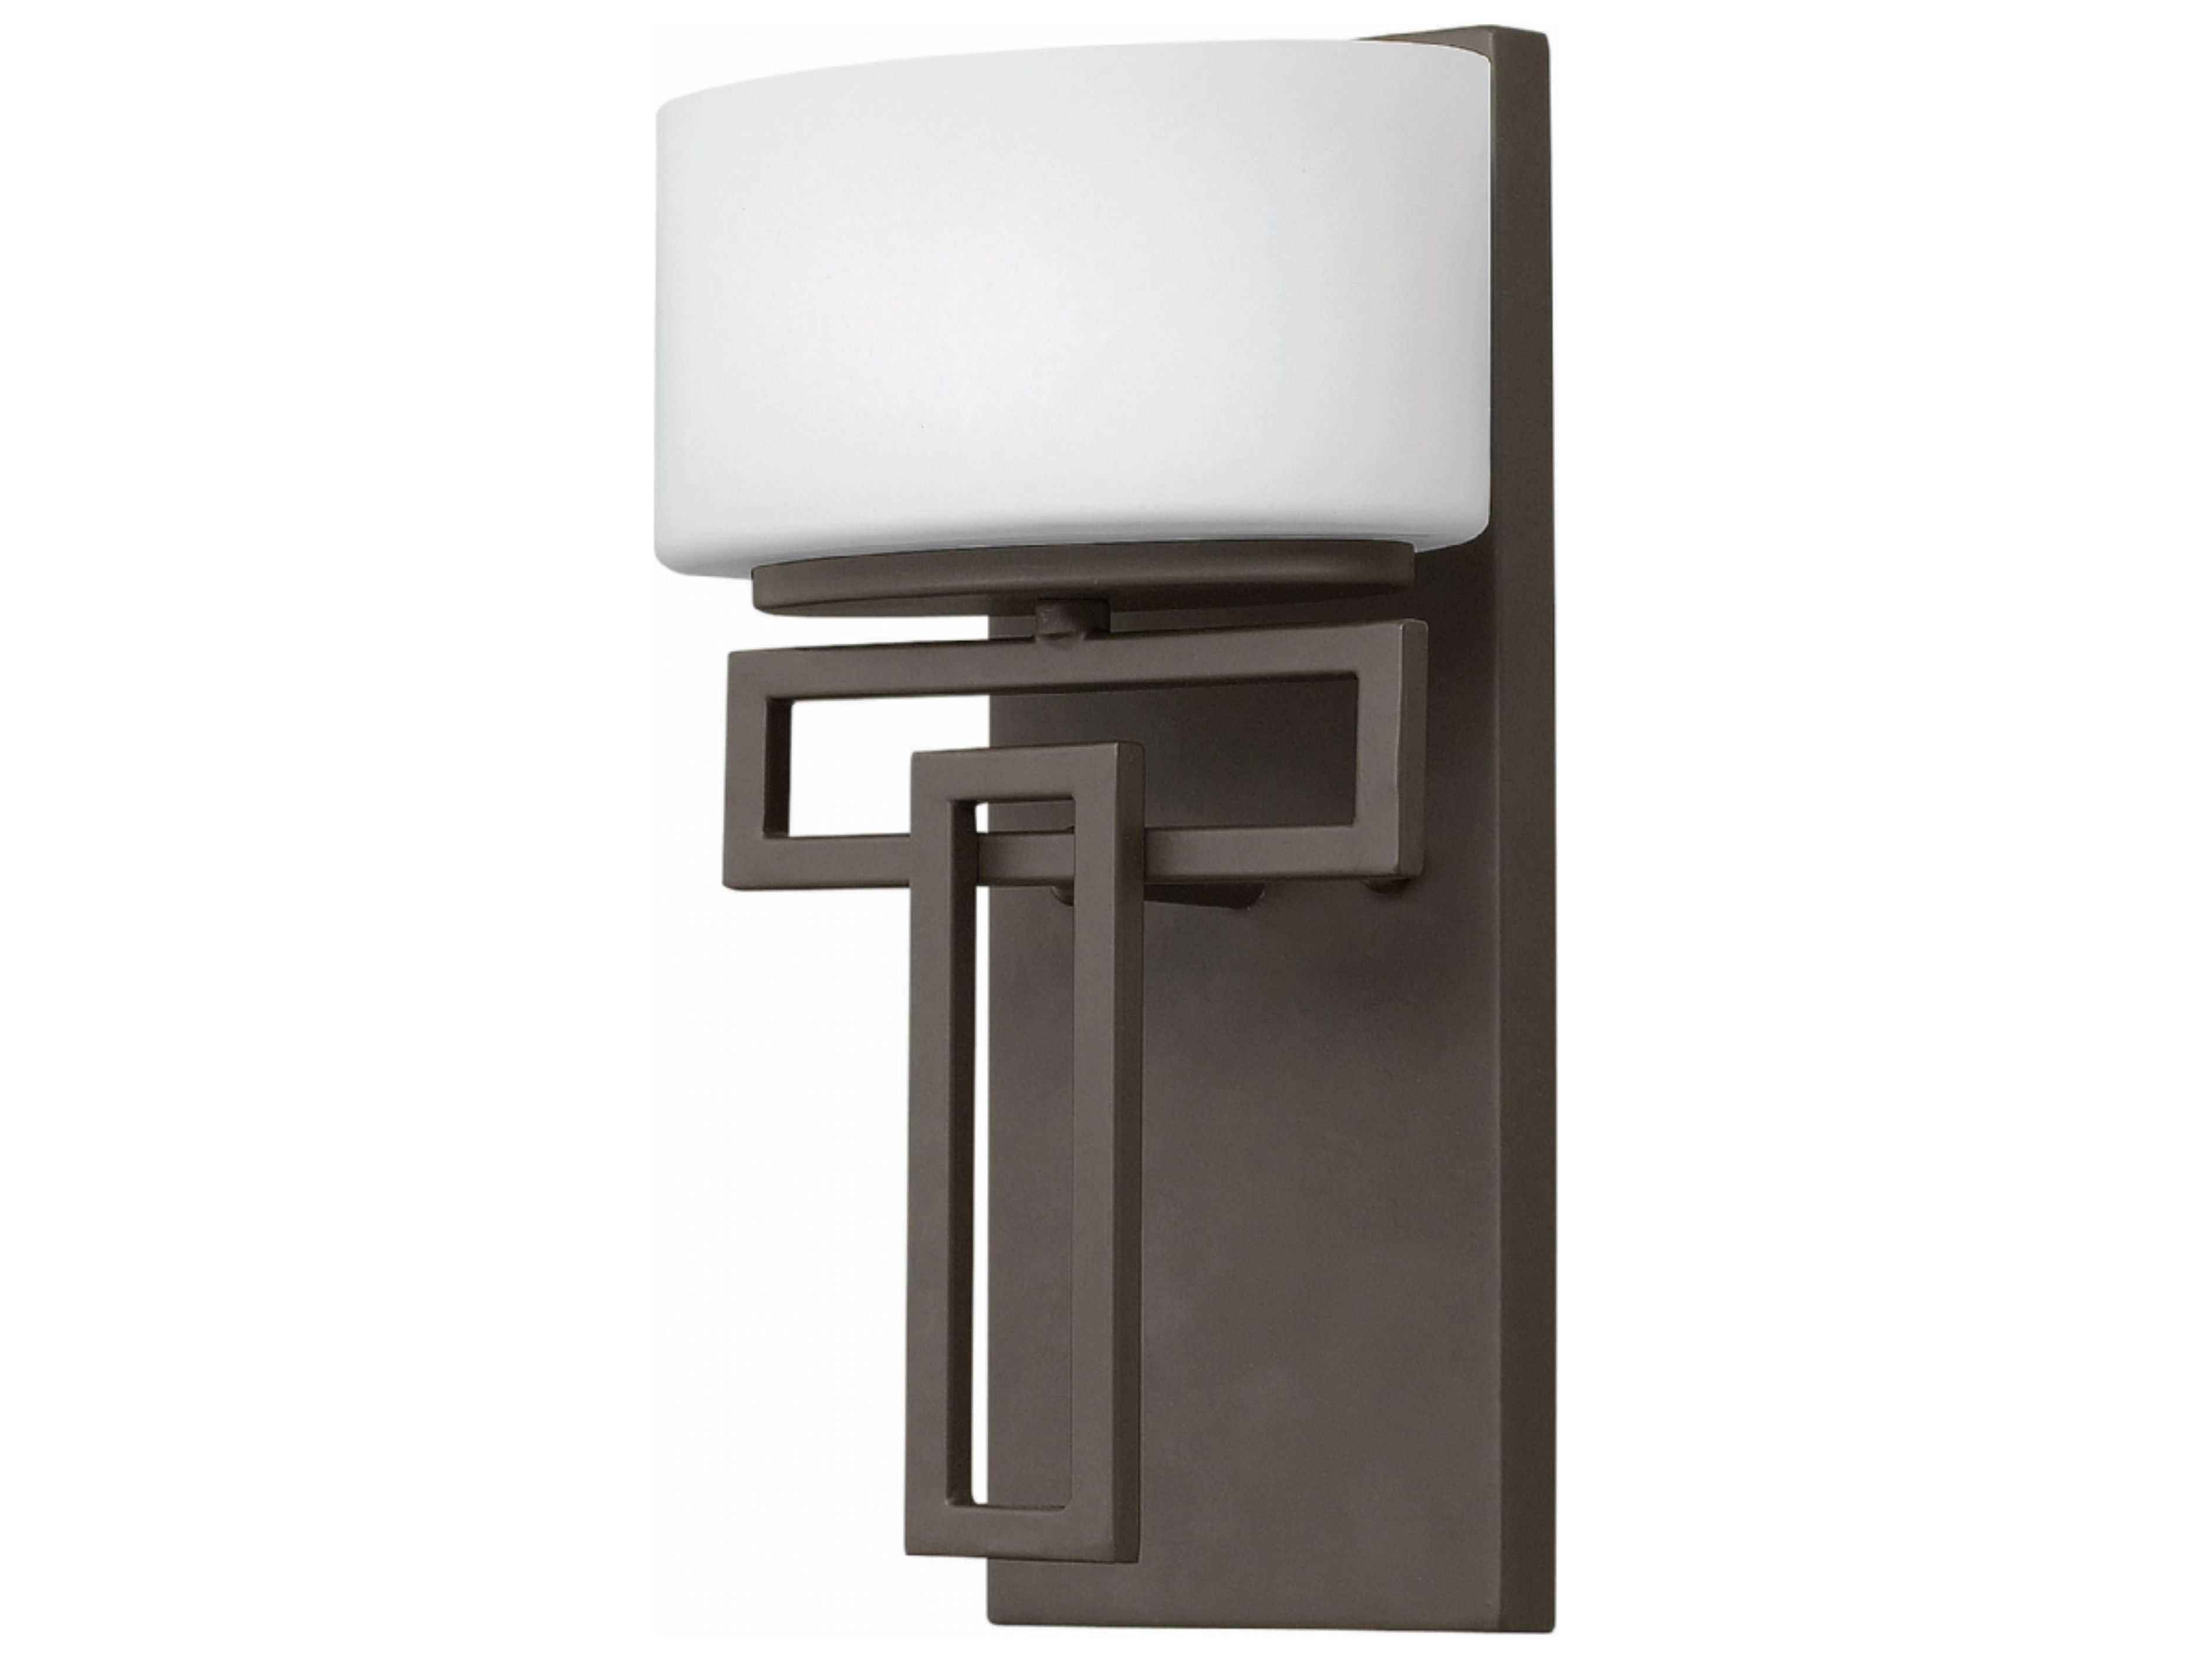 Kichler Barrington 3 Light 22 In Cylinder Vanity Light At: Hinkley Lighting Lanza Buckeye Bronze With Etched Opal